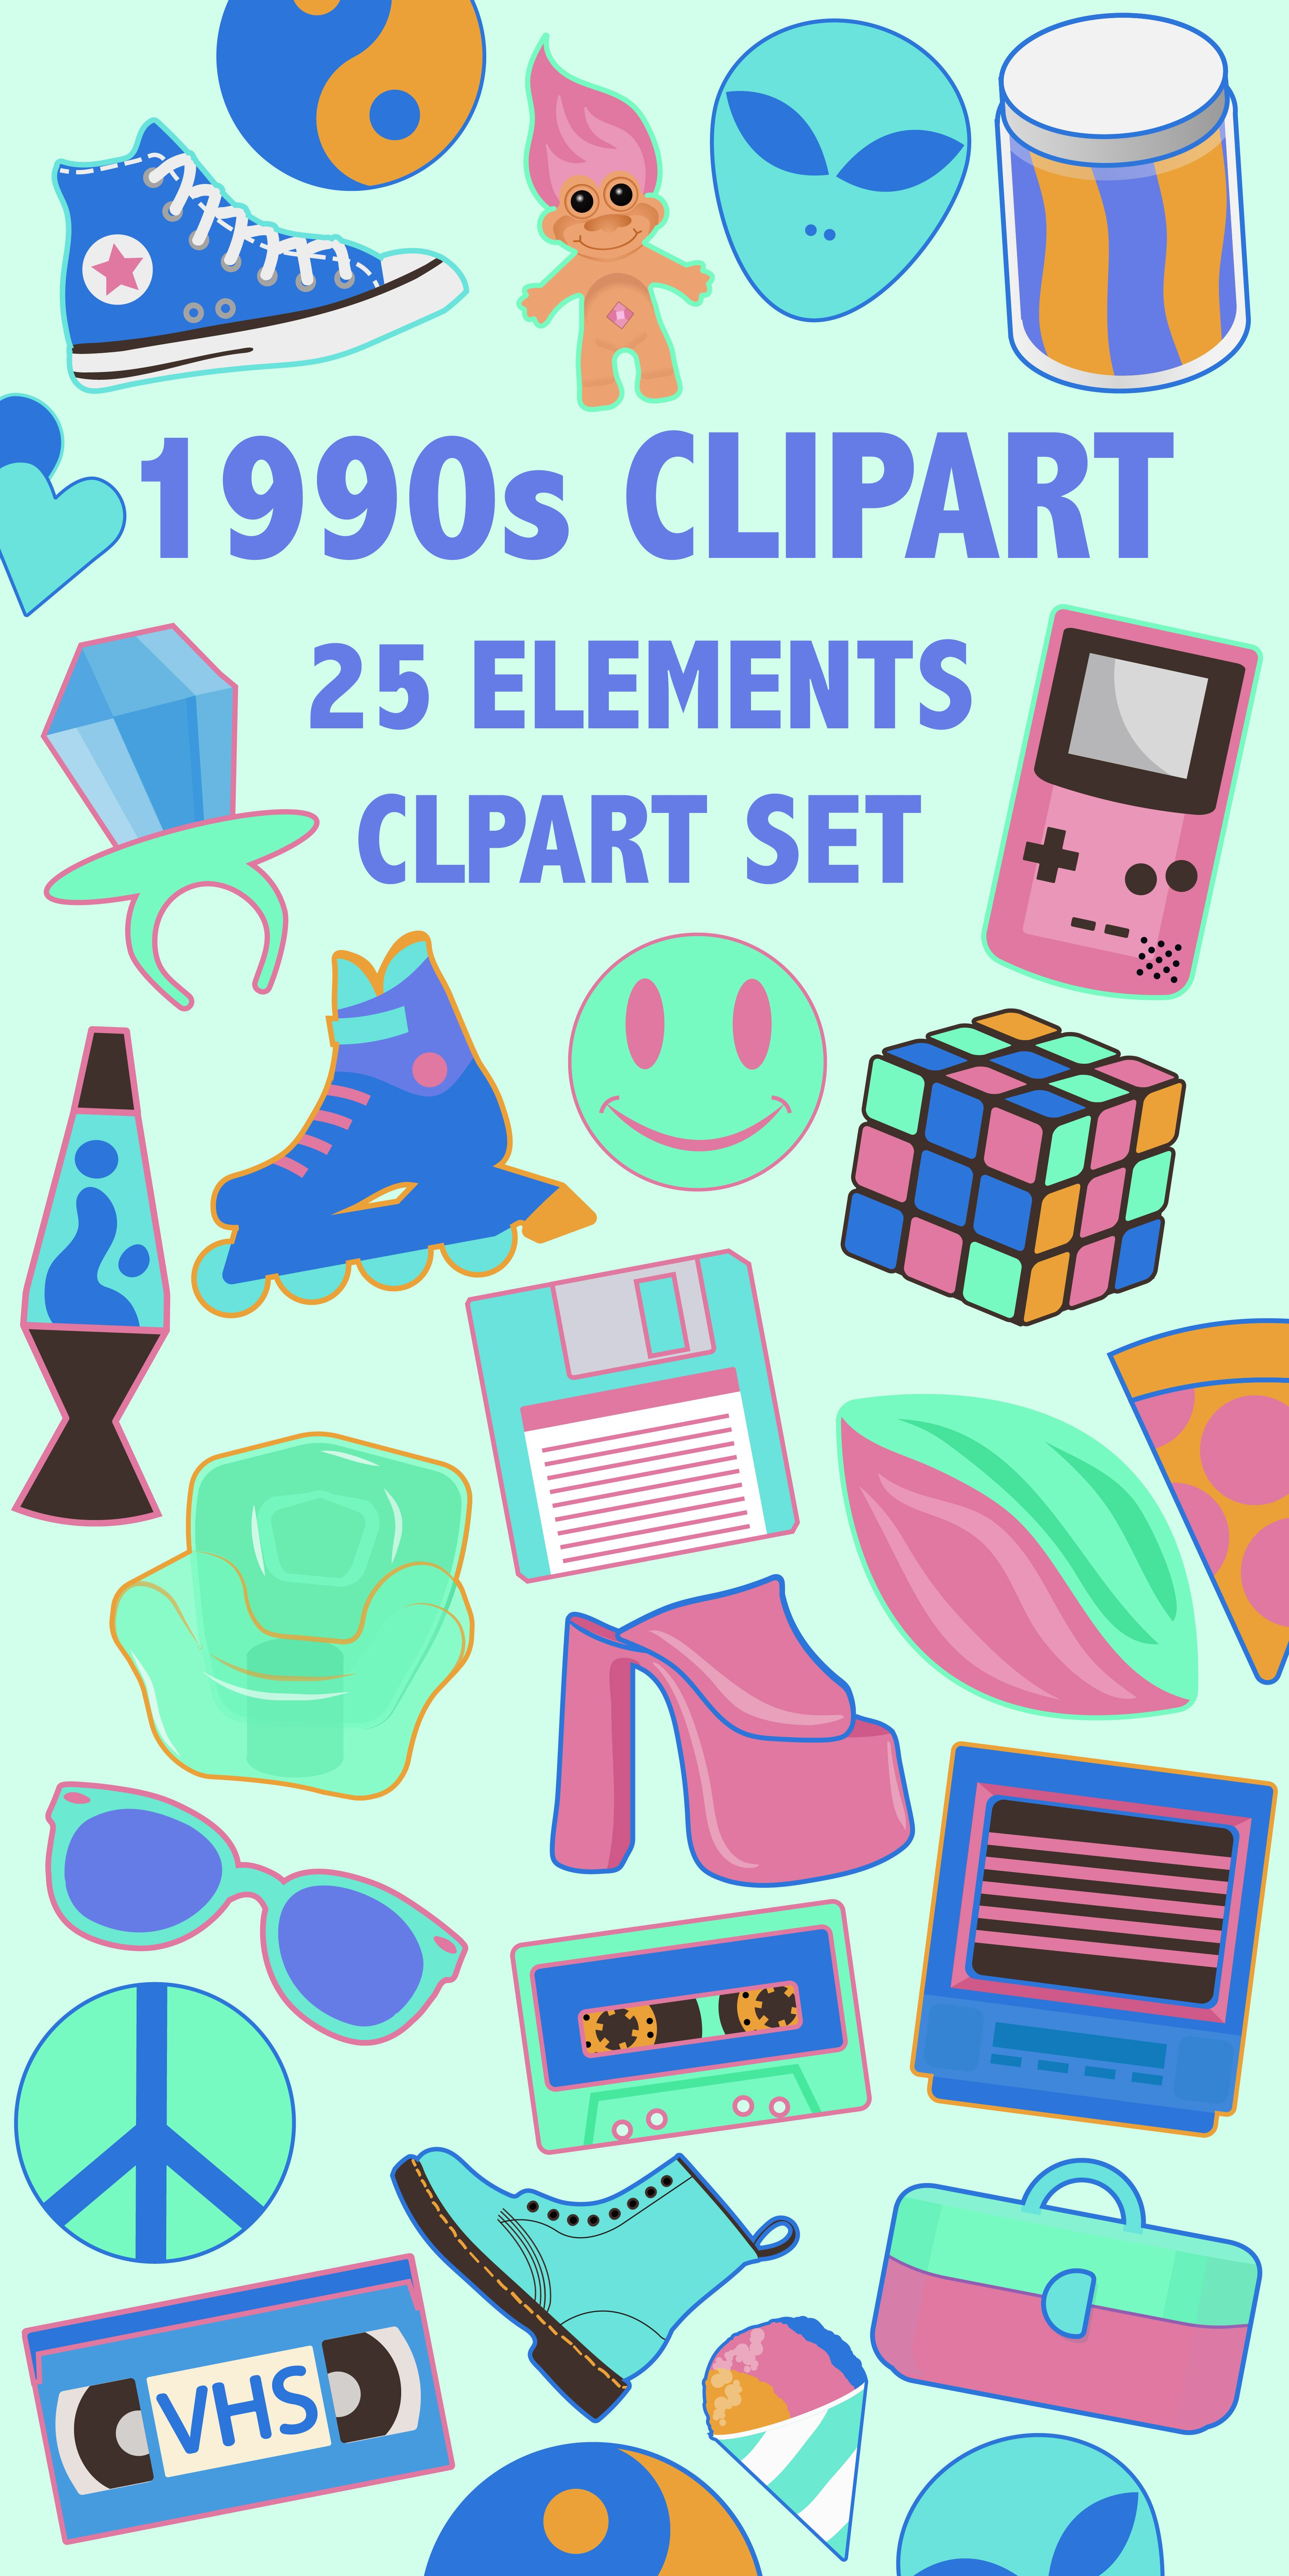 1990s color gameboy clipart picture free 1990\'S CLIPART - Neon colors 90s toys, fashion, and objects ... picture free